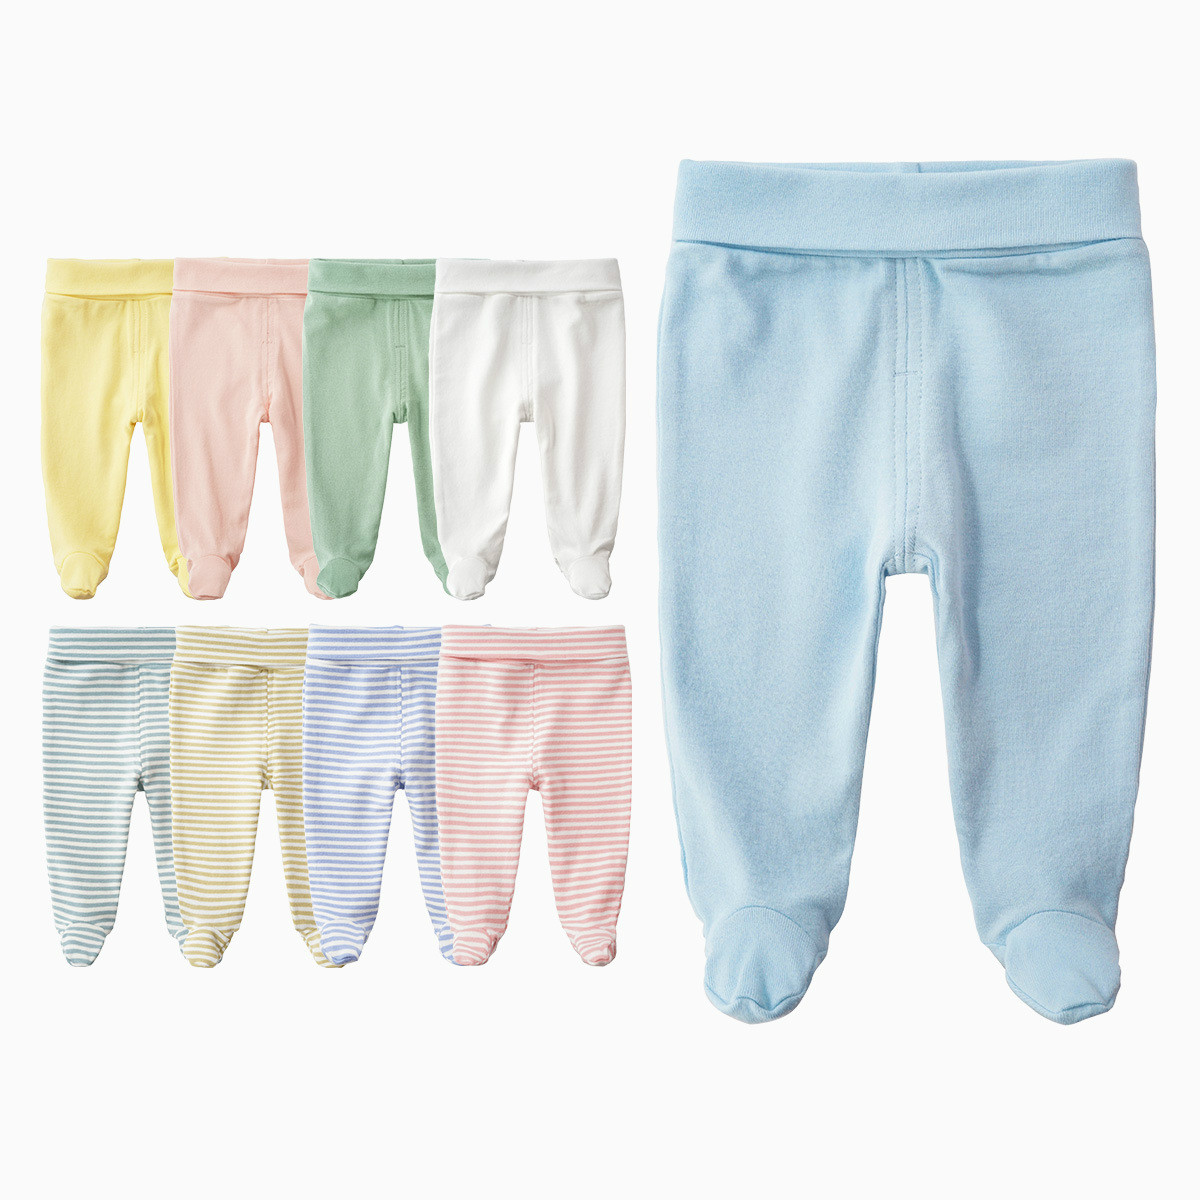 2019 Newborn baby Pants Baby boy Clothes Autumn Unisex Solid Loose Casual Cotton Broadcloth Infant-clothing Baby Leggins